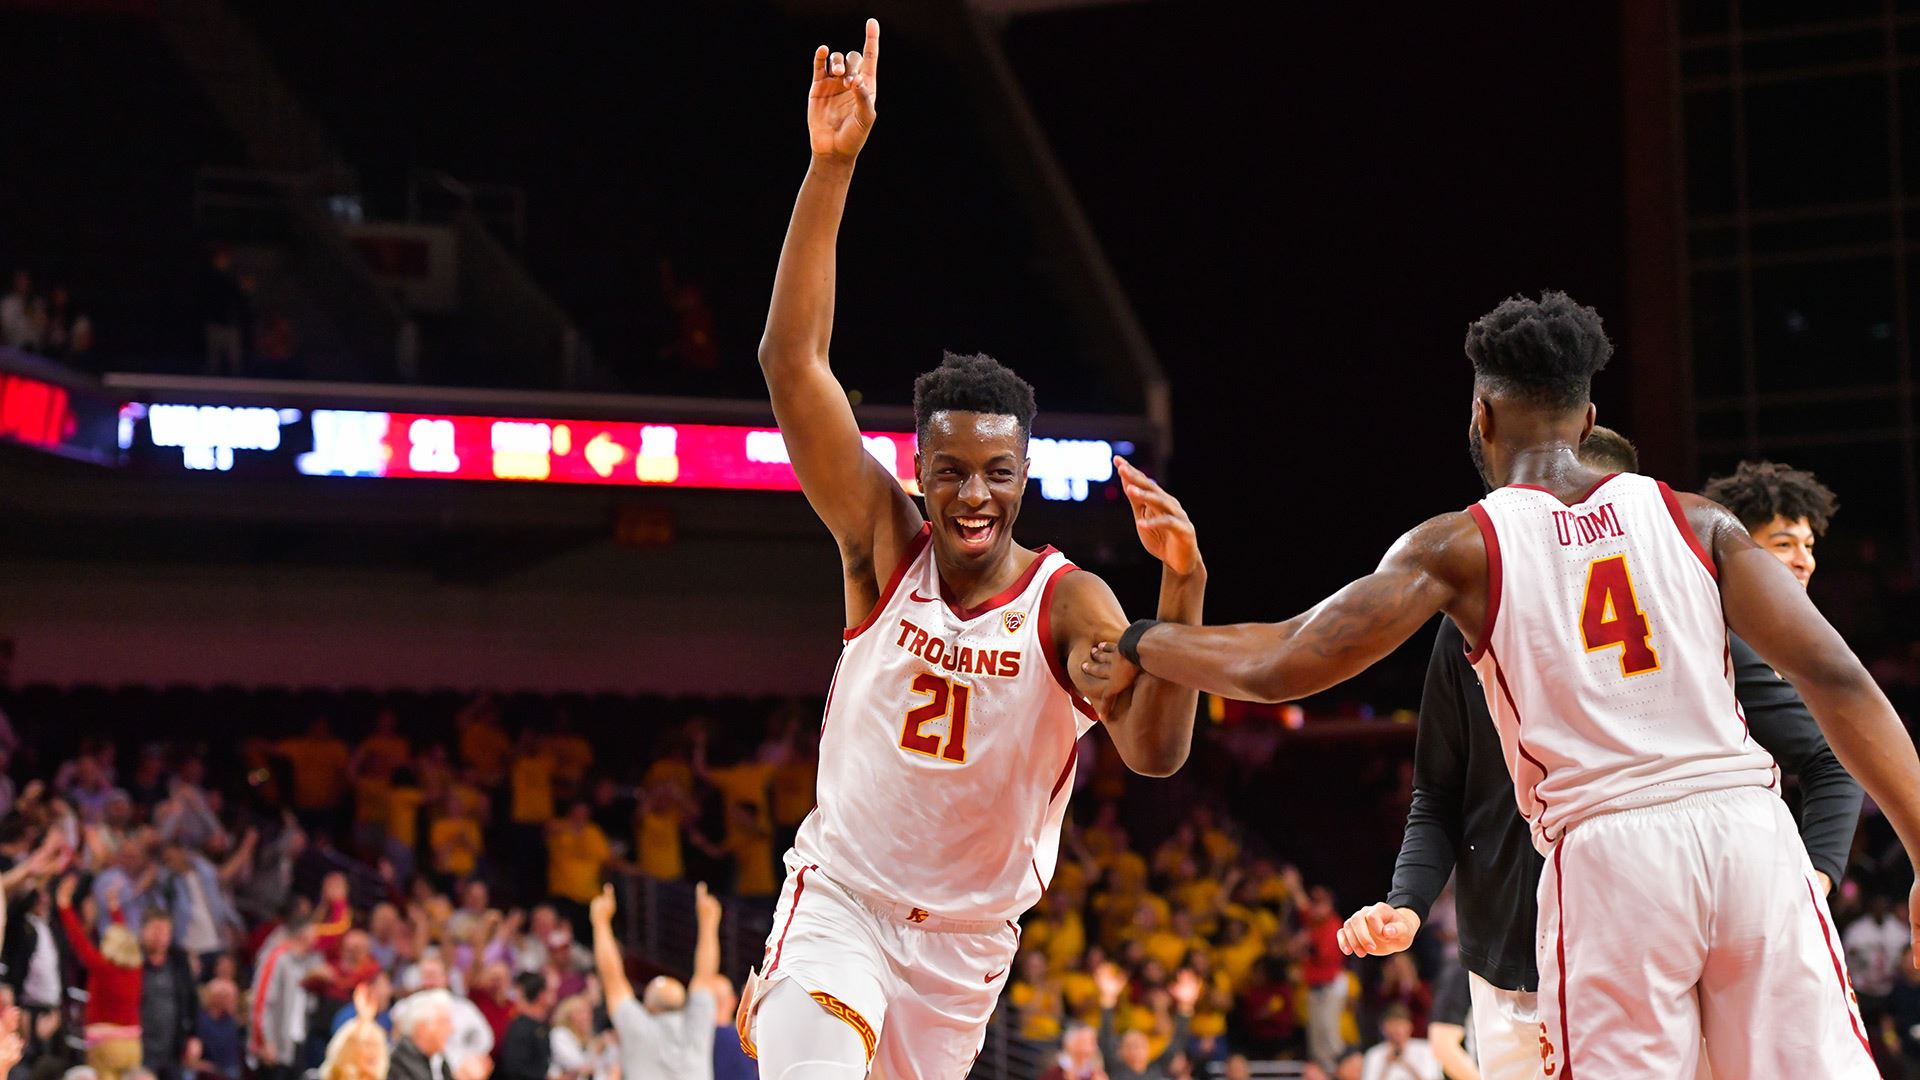 USC's freshman big man, Onyeka Okongwu had another strong performance, as he helped lead his team to a win over Arizona.  (Photo: John McGillen/USC Athletics.)